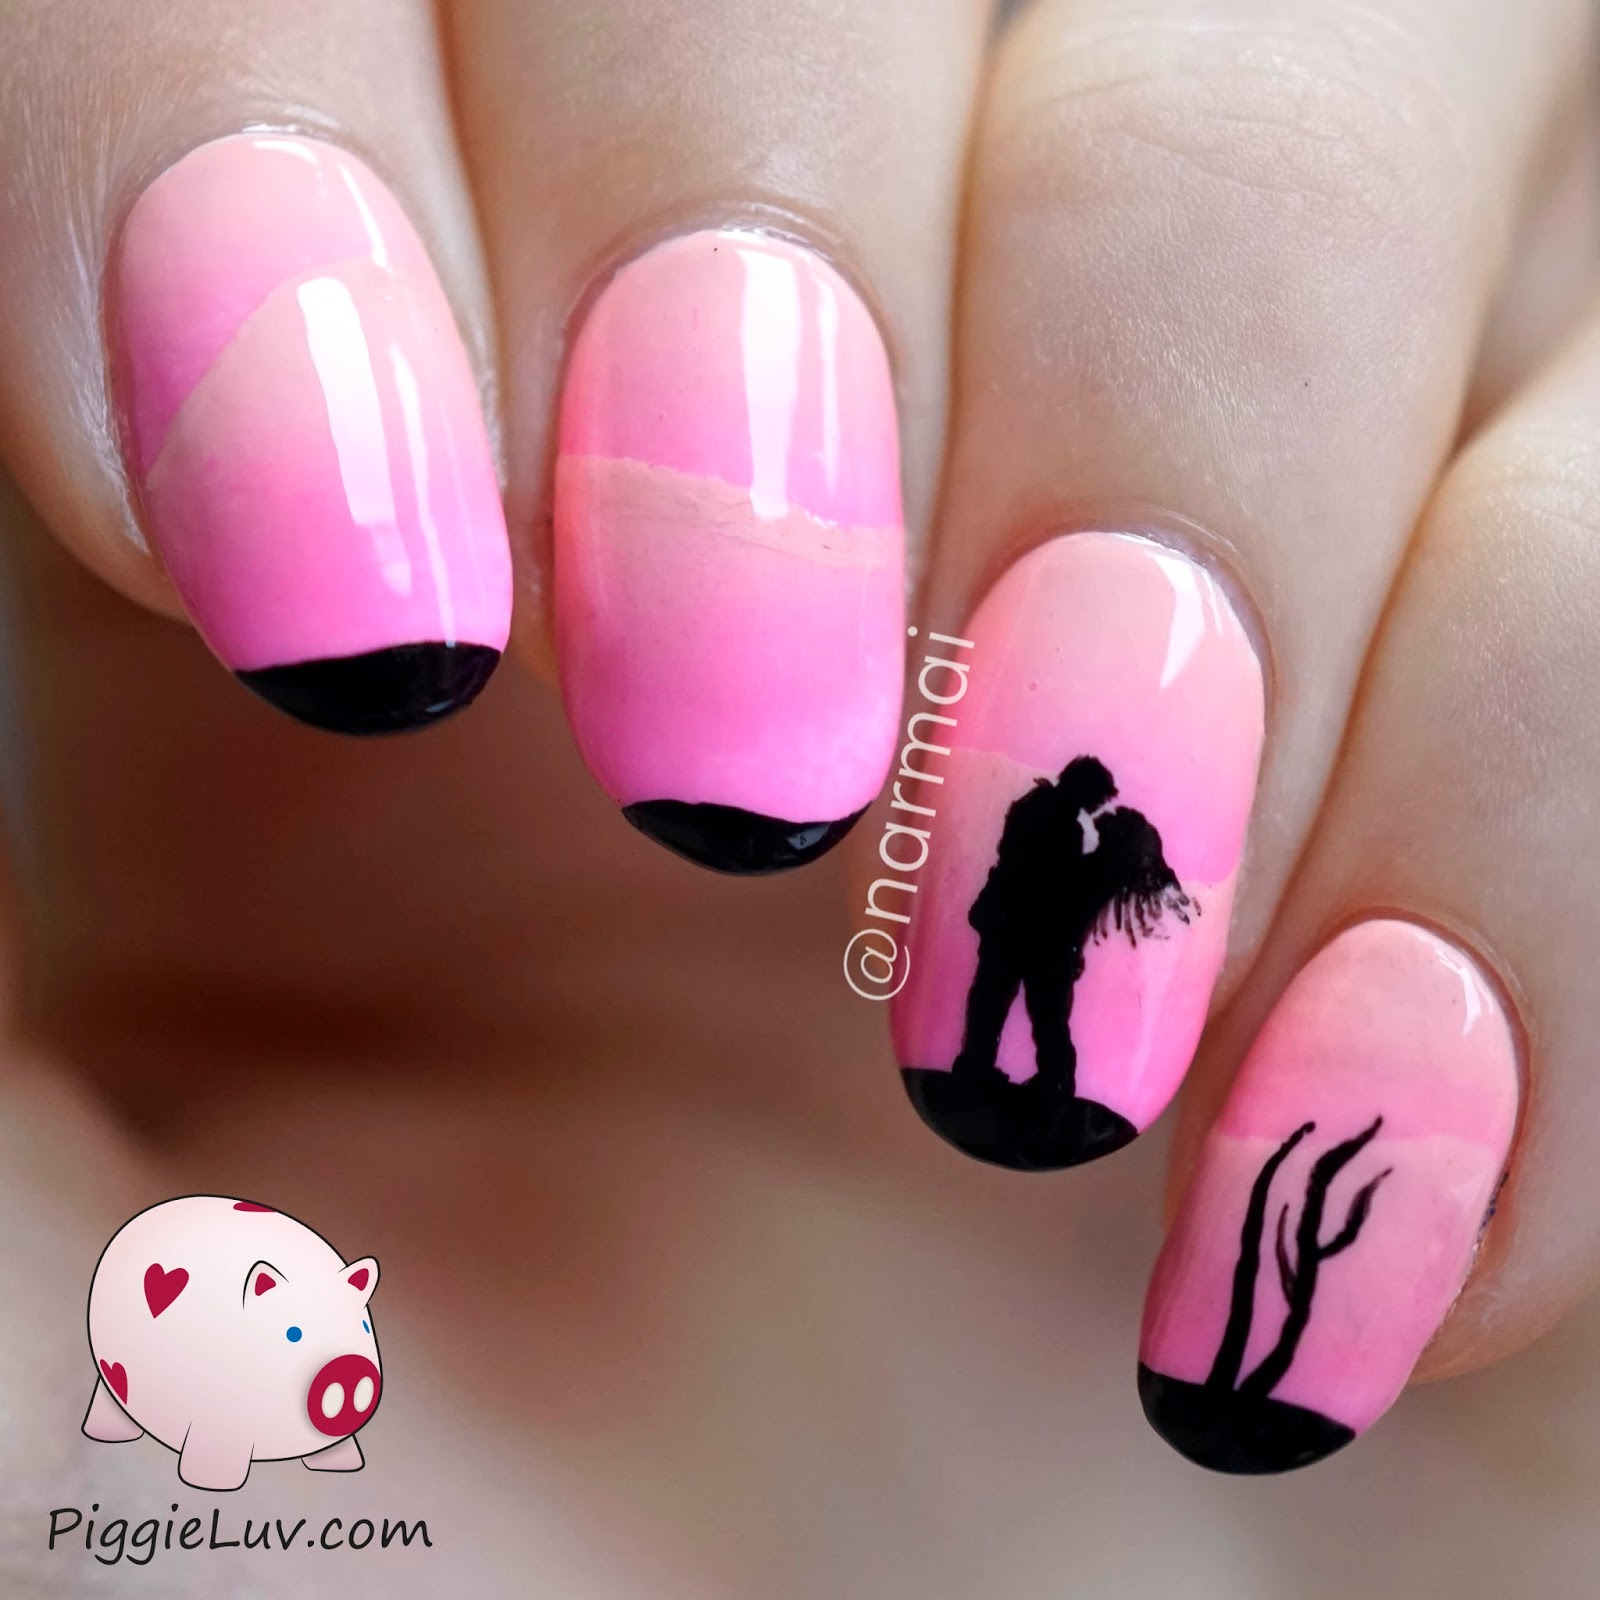 Pics Of Nail Art: PiggieLuv: Pink Scaled Gradient With Freehand Silhouette